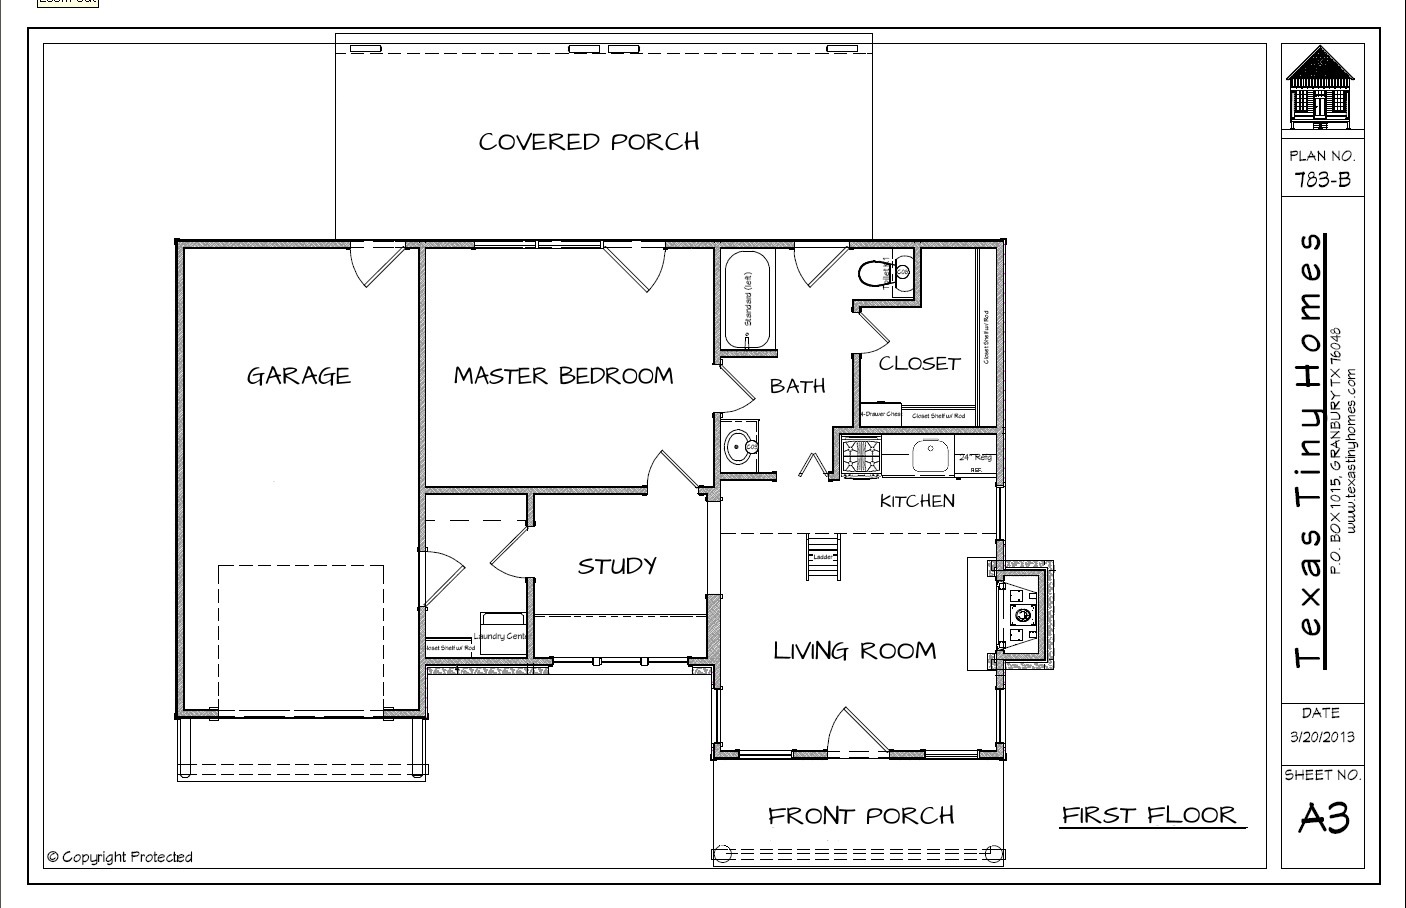 Plan 783 texas tiny homes Small house designs and floor plans